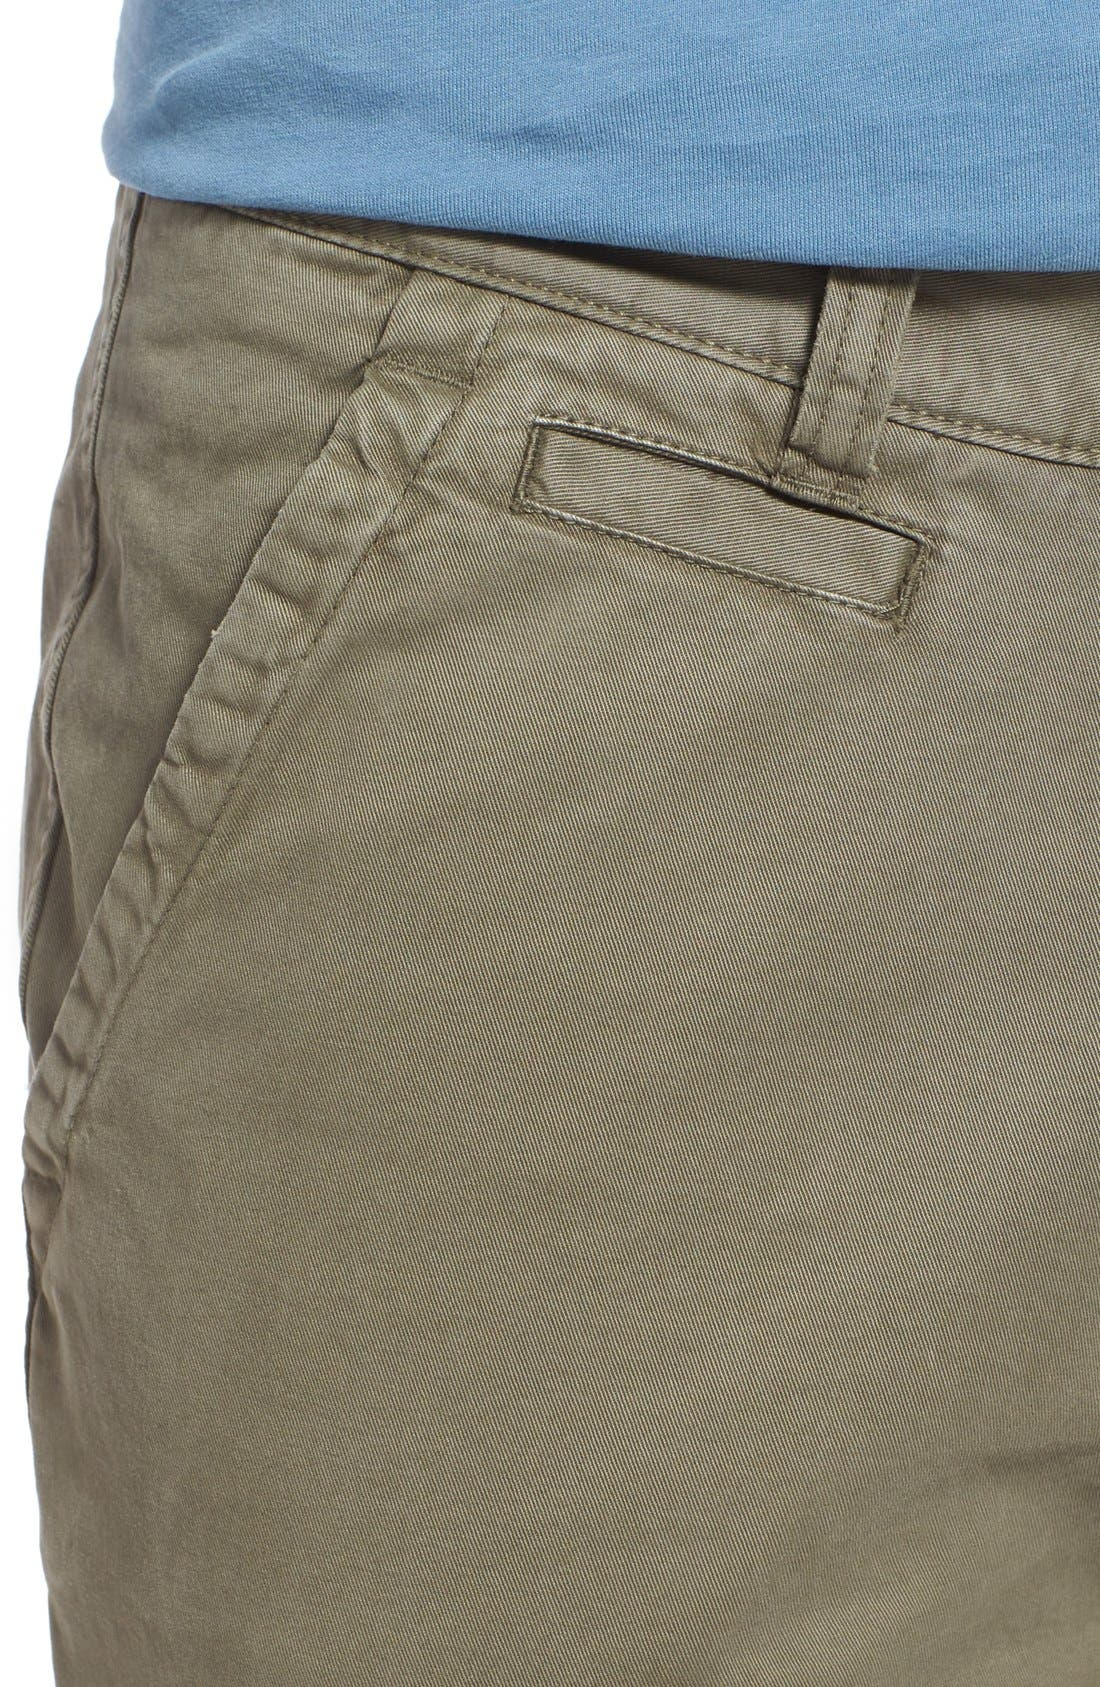 'Sahara' Trim Fit Vintage Washed Twill Chinos,                             Alternate thumbnail 28, color,